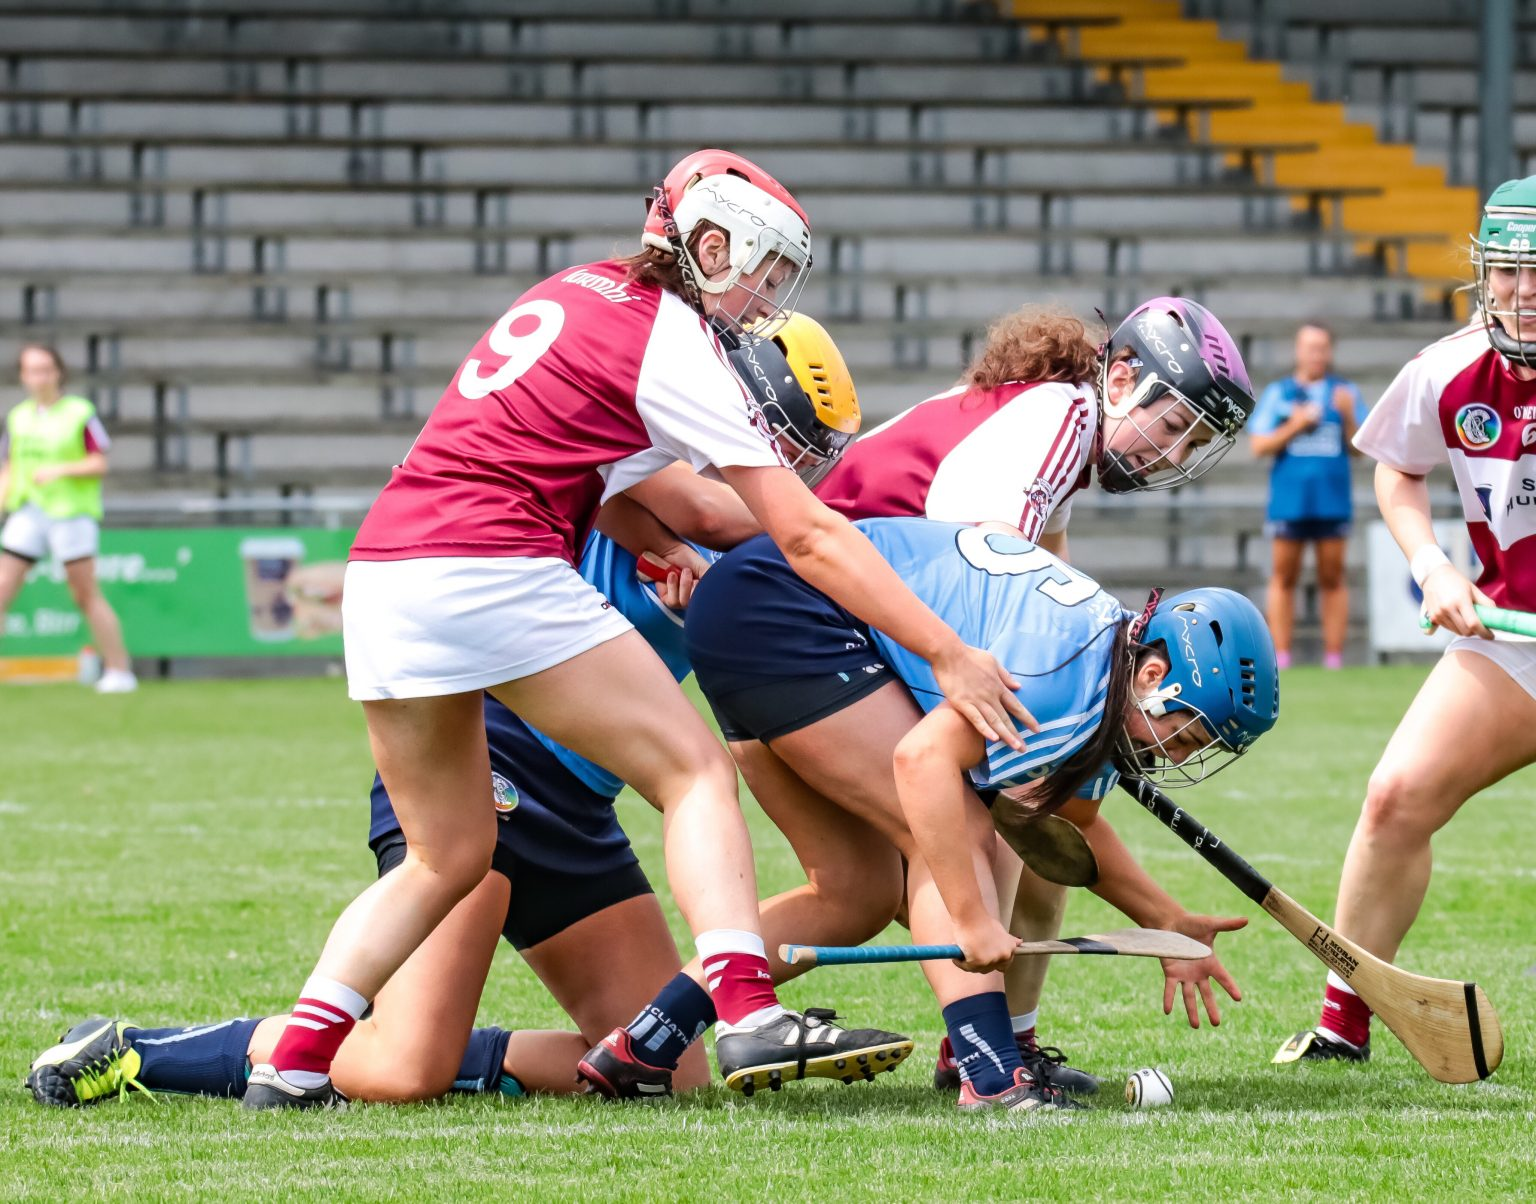 Two Dublin Camogie players in sky blue jerseys battle for the ball with two Westmeath players in maroon jerseys with white sleeves